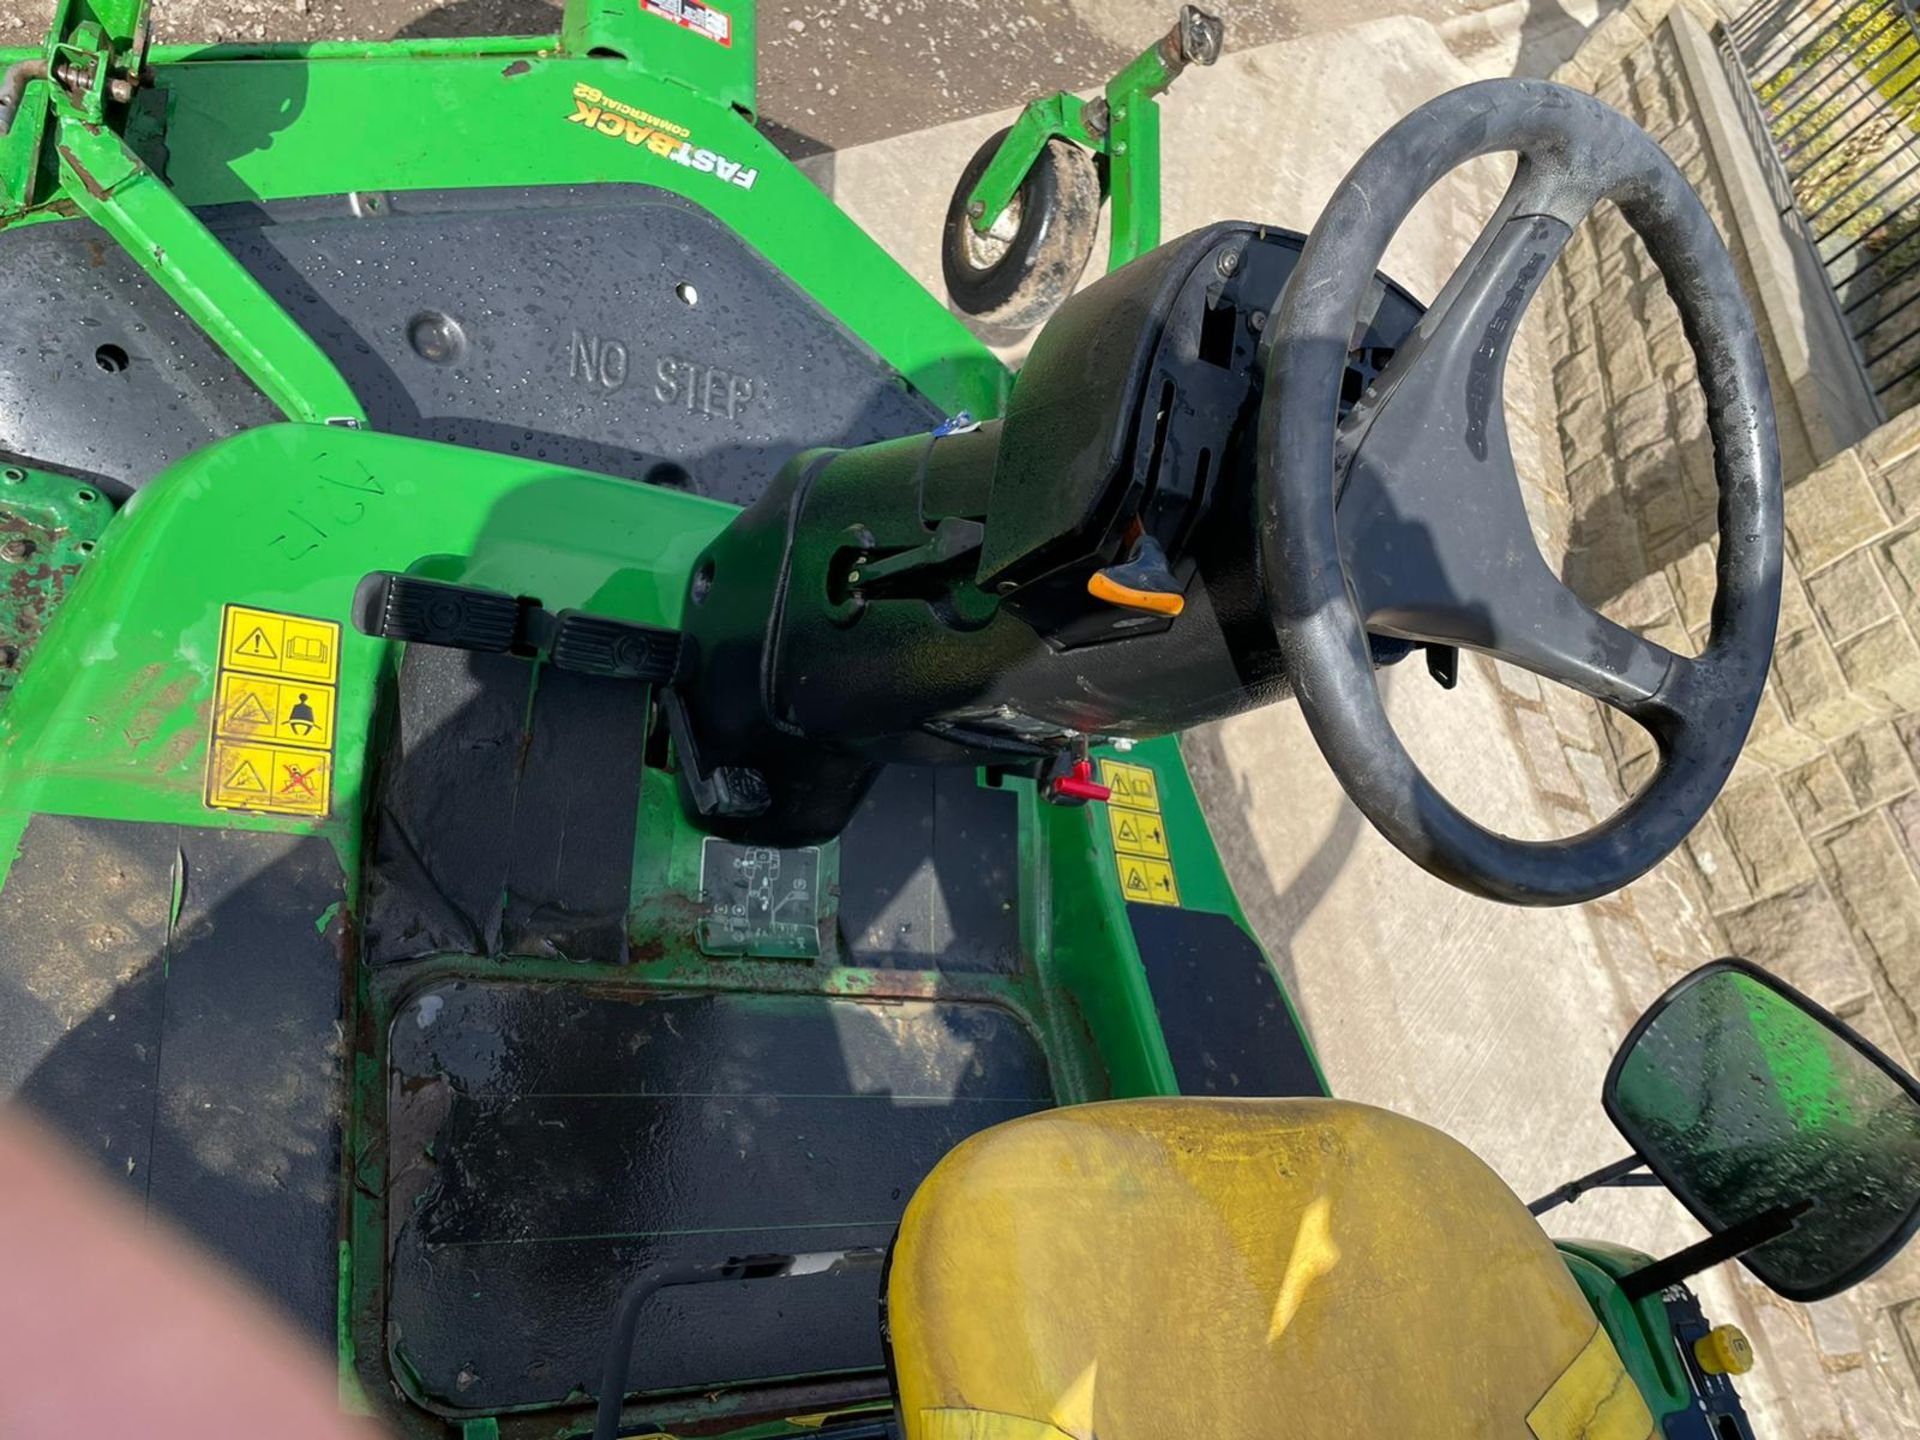 JOHN DEERE 1445 RIDE ON MOWER, RUNS DRIVES AND CUTS, IN USED BUT GOOD CONDITION *NO VAT* - Image 7 of 9